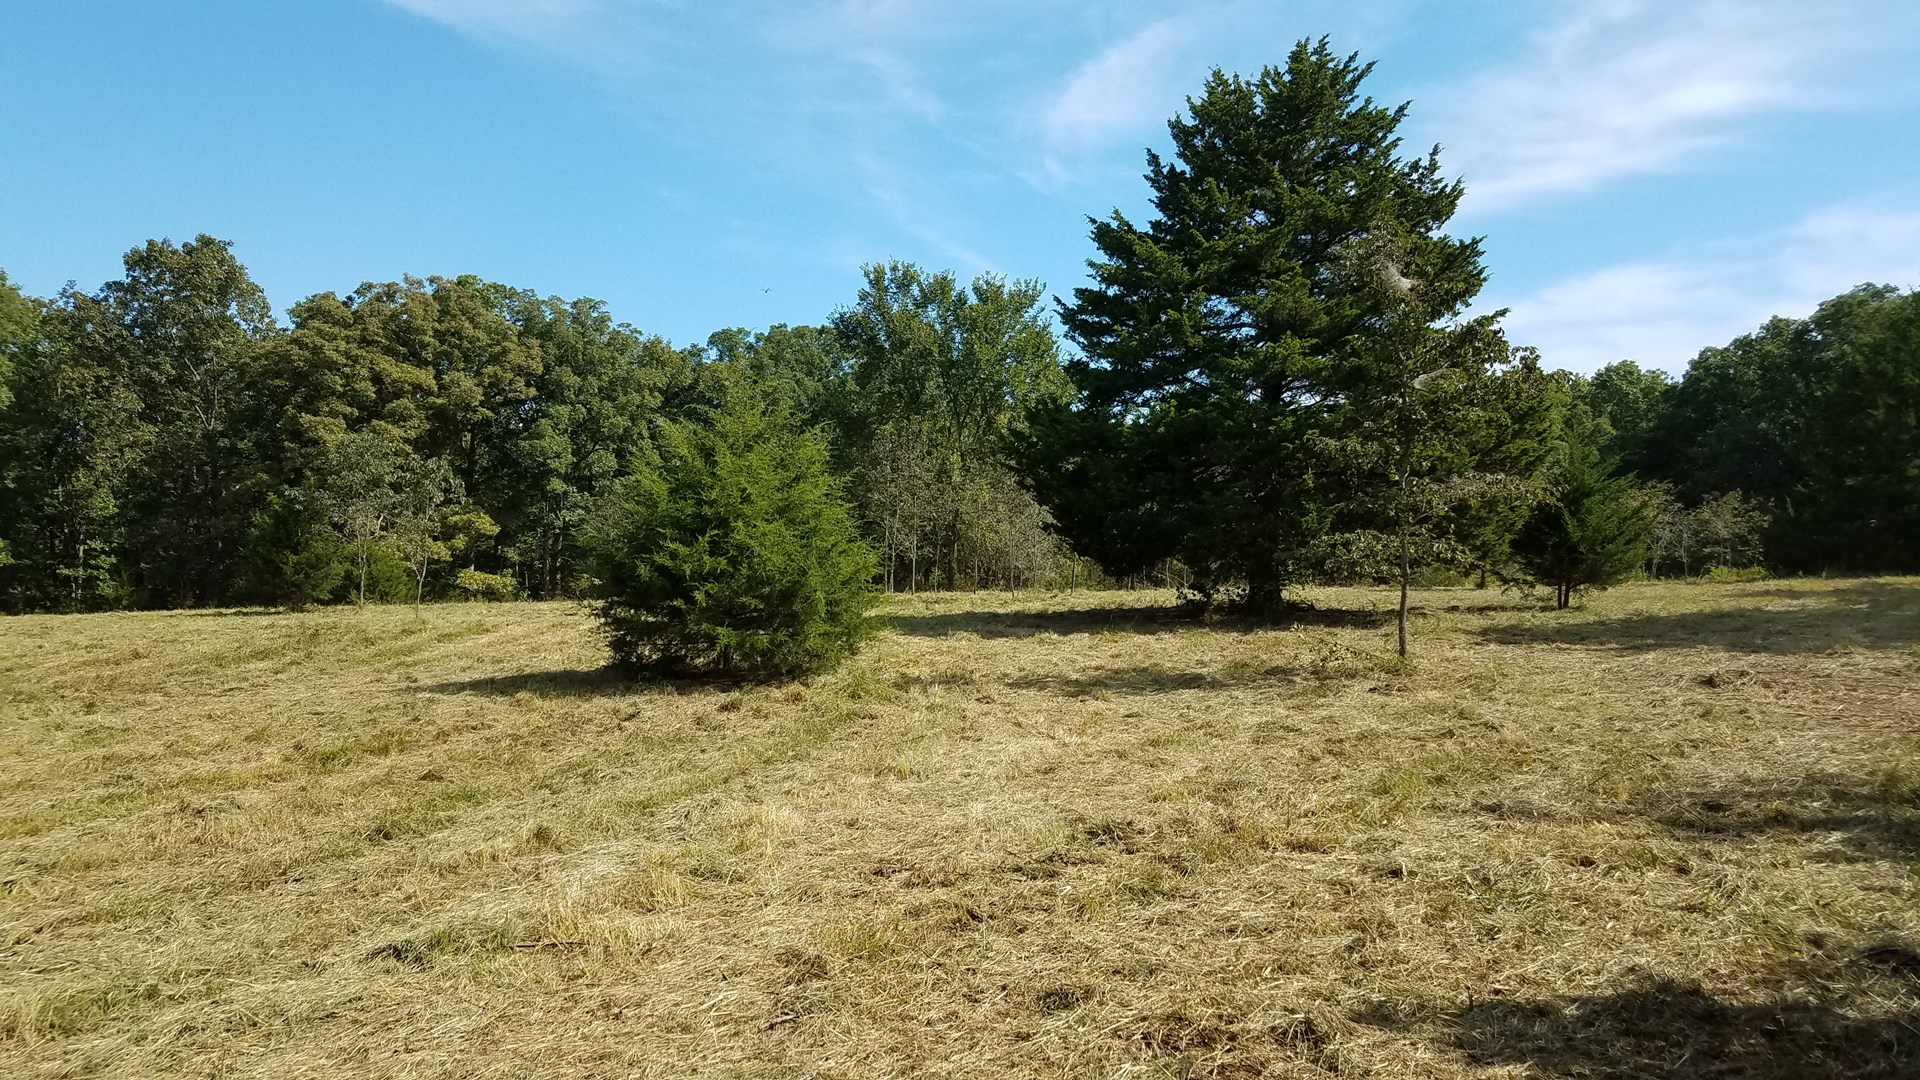 Land For Sale! 7+/- Acres Vacant Land With Pond!